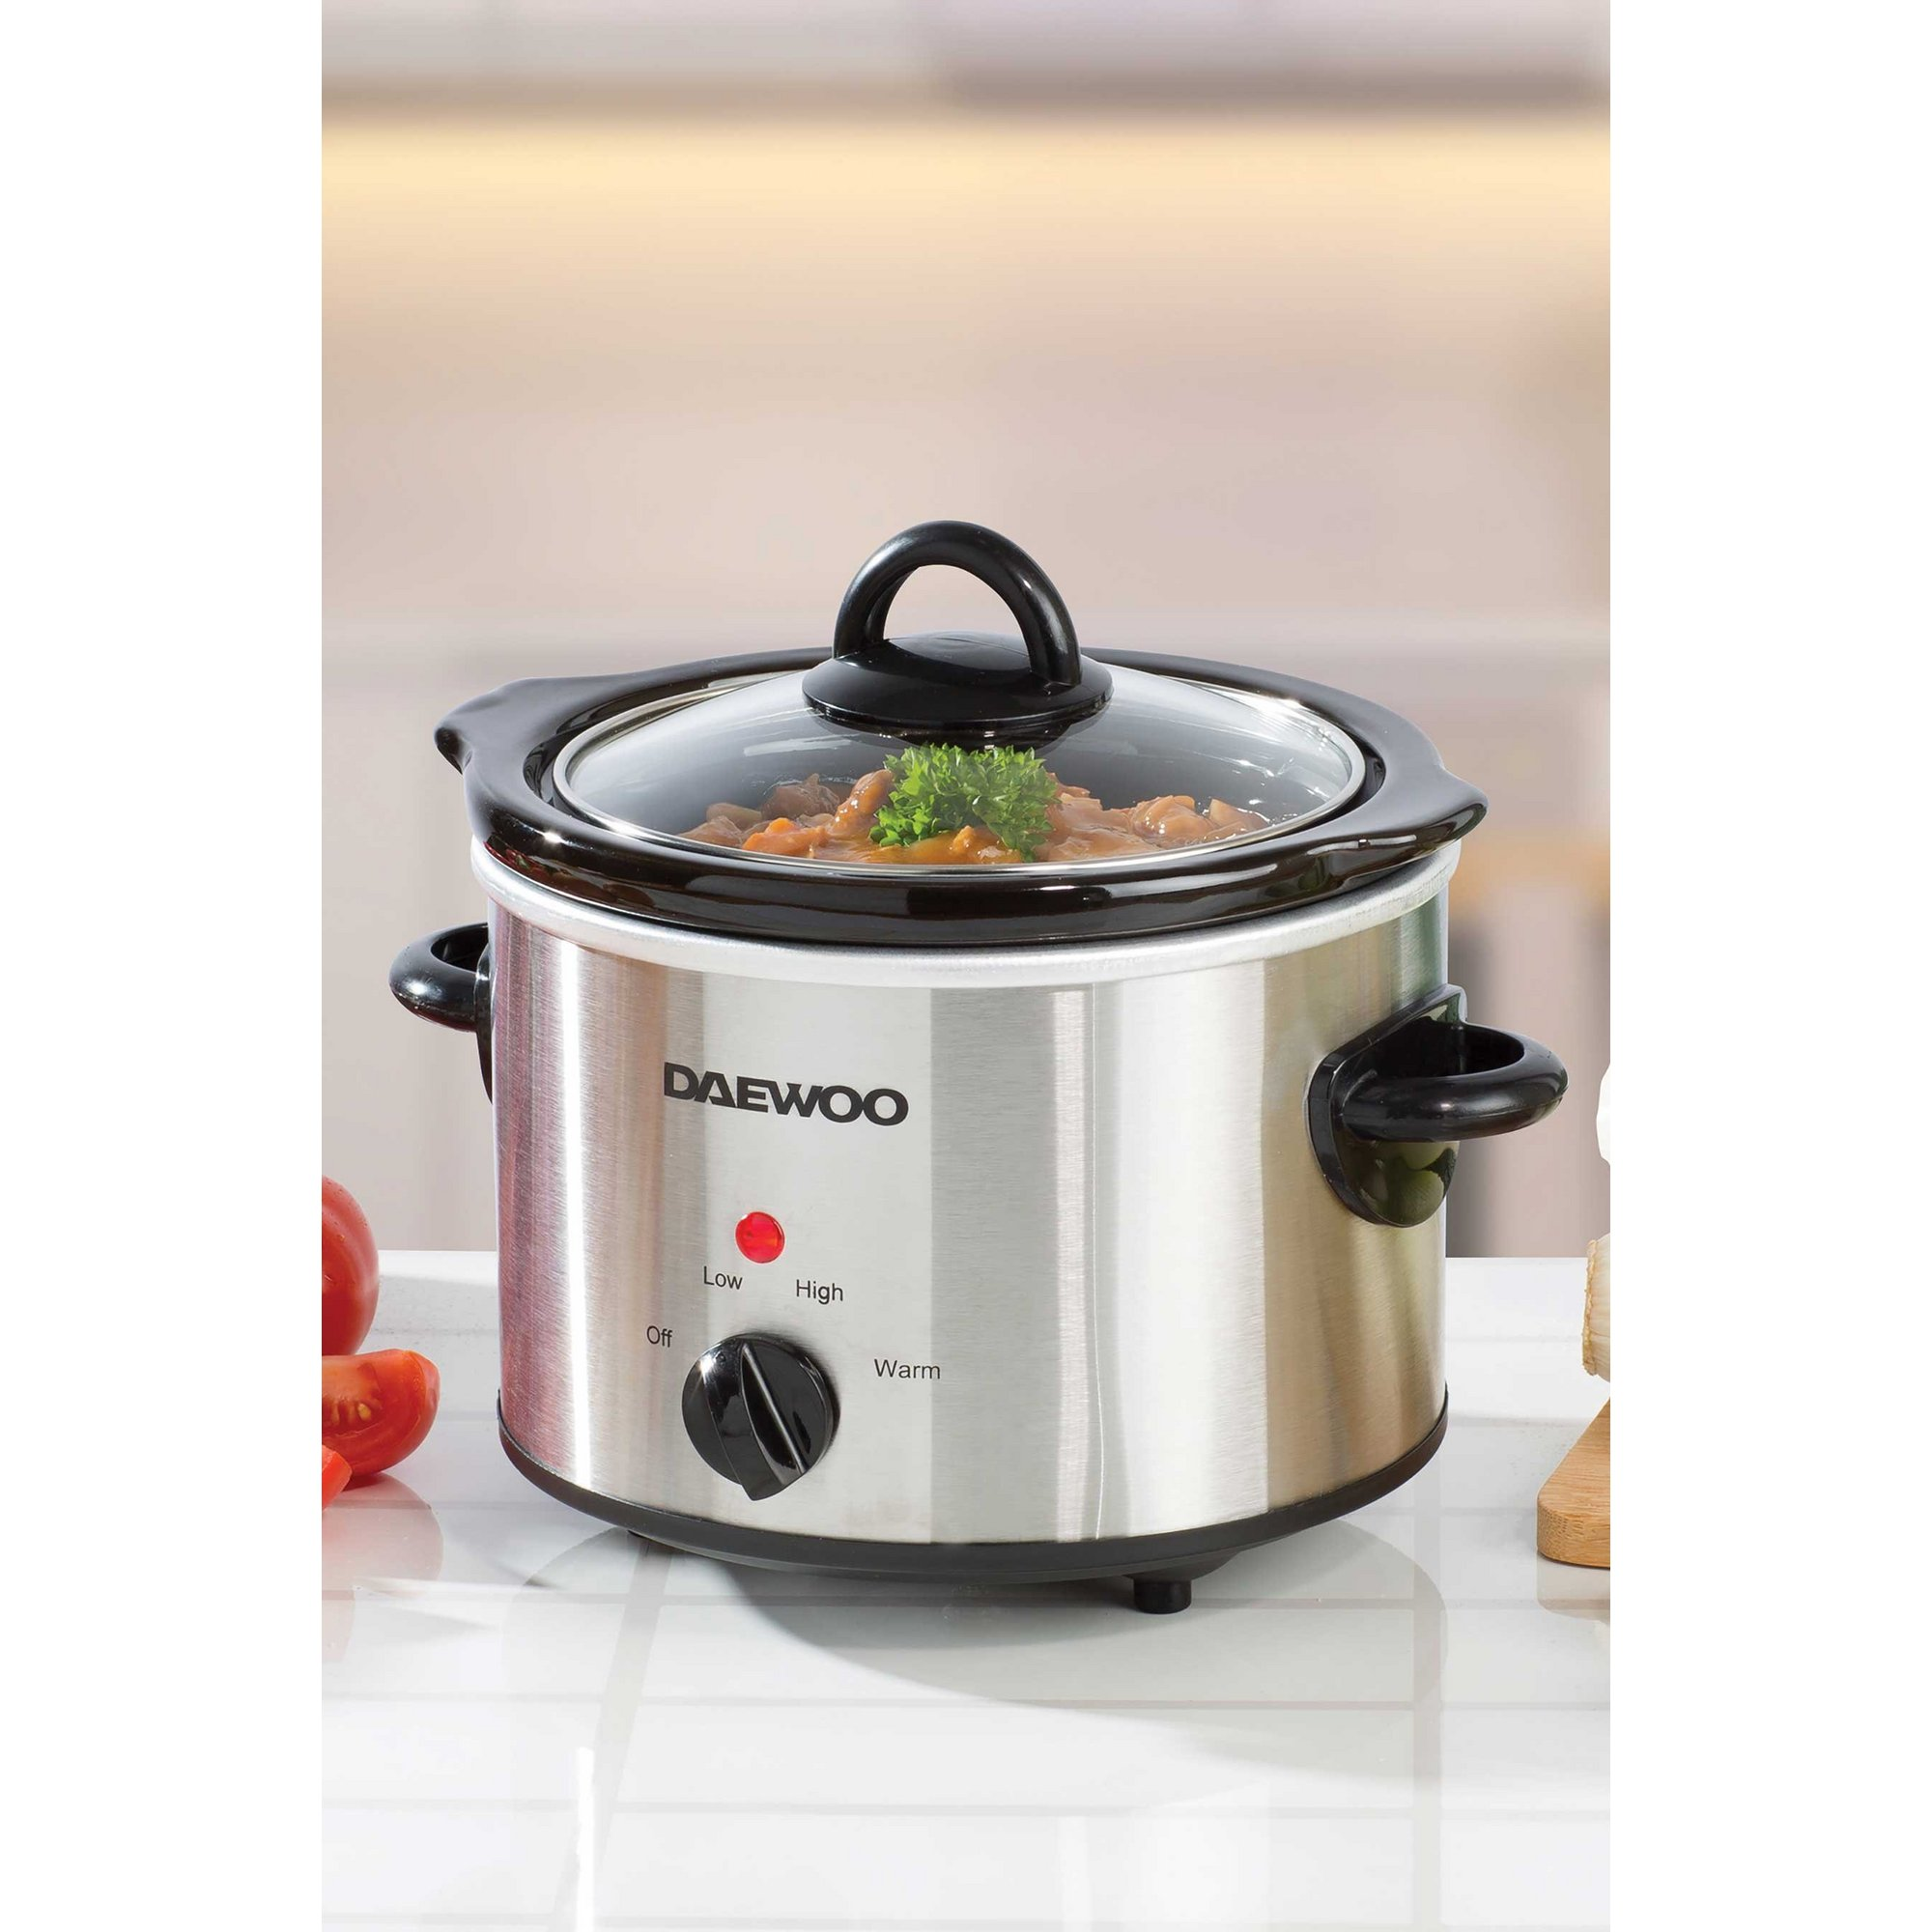 Image of Daewoo 1.5 Litre Slow Cooker - Stainless Steel